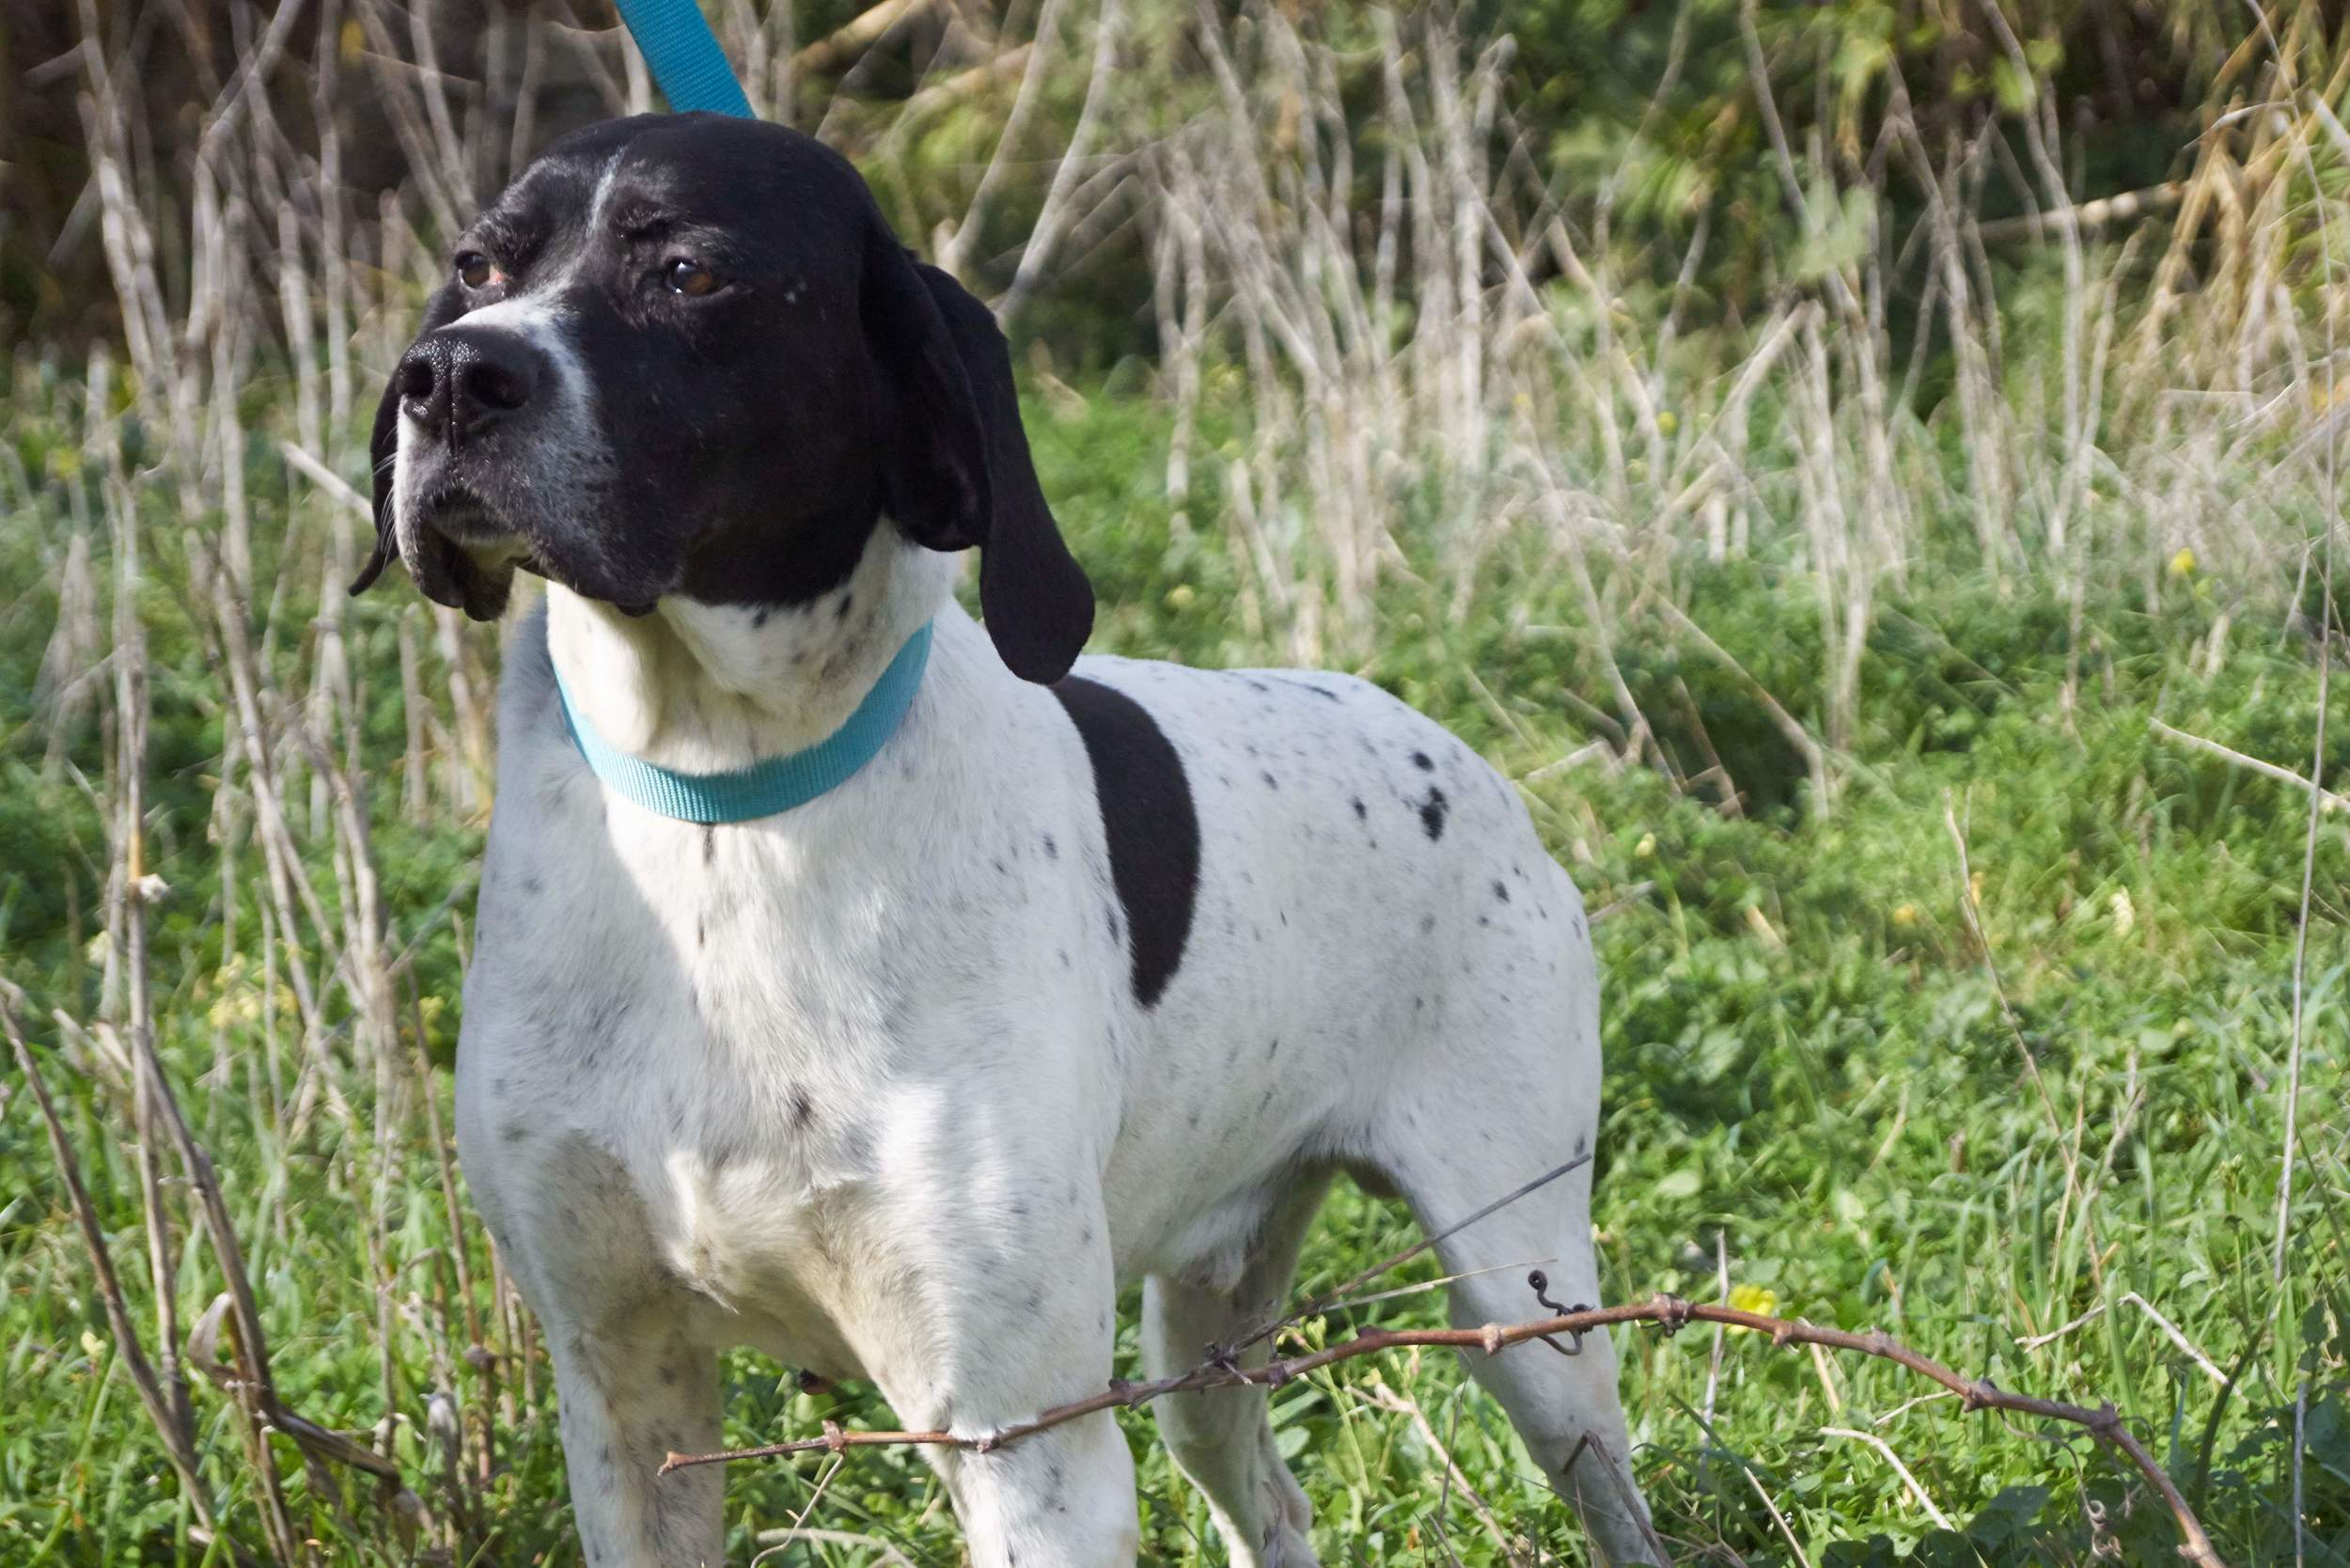 Pointerakos purebred pointer hunting dog | Mykonos dog rescue and adoption | Evie Rossopoulou | Koray User